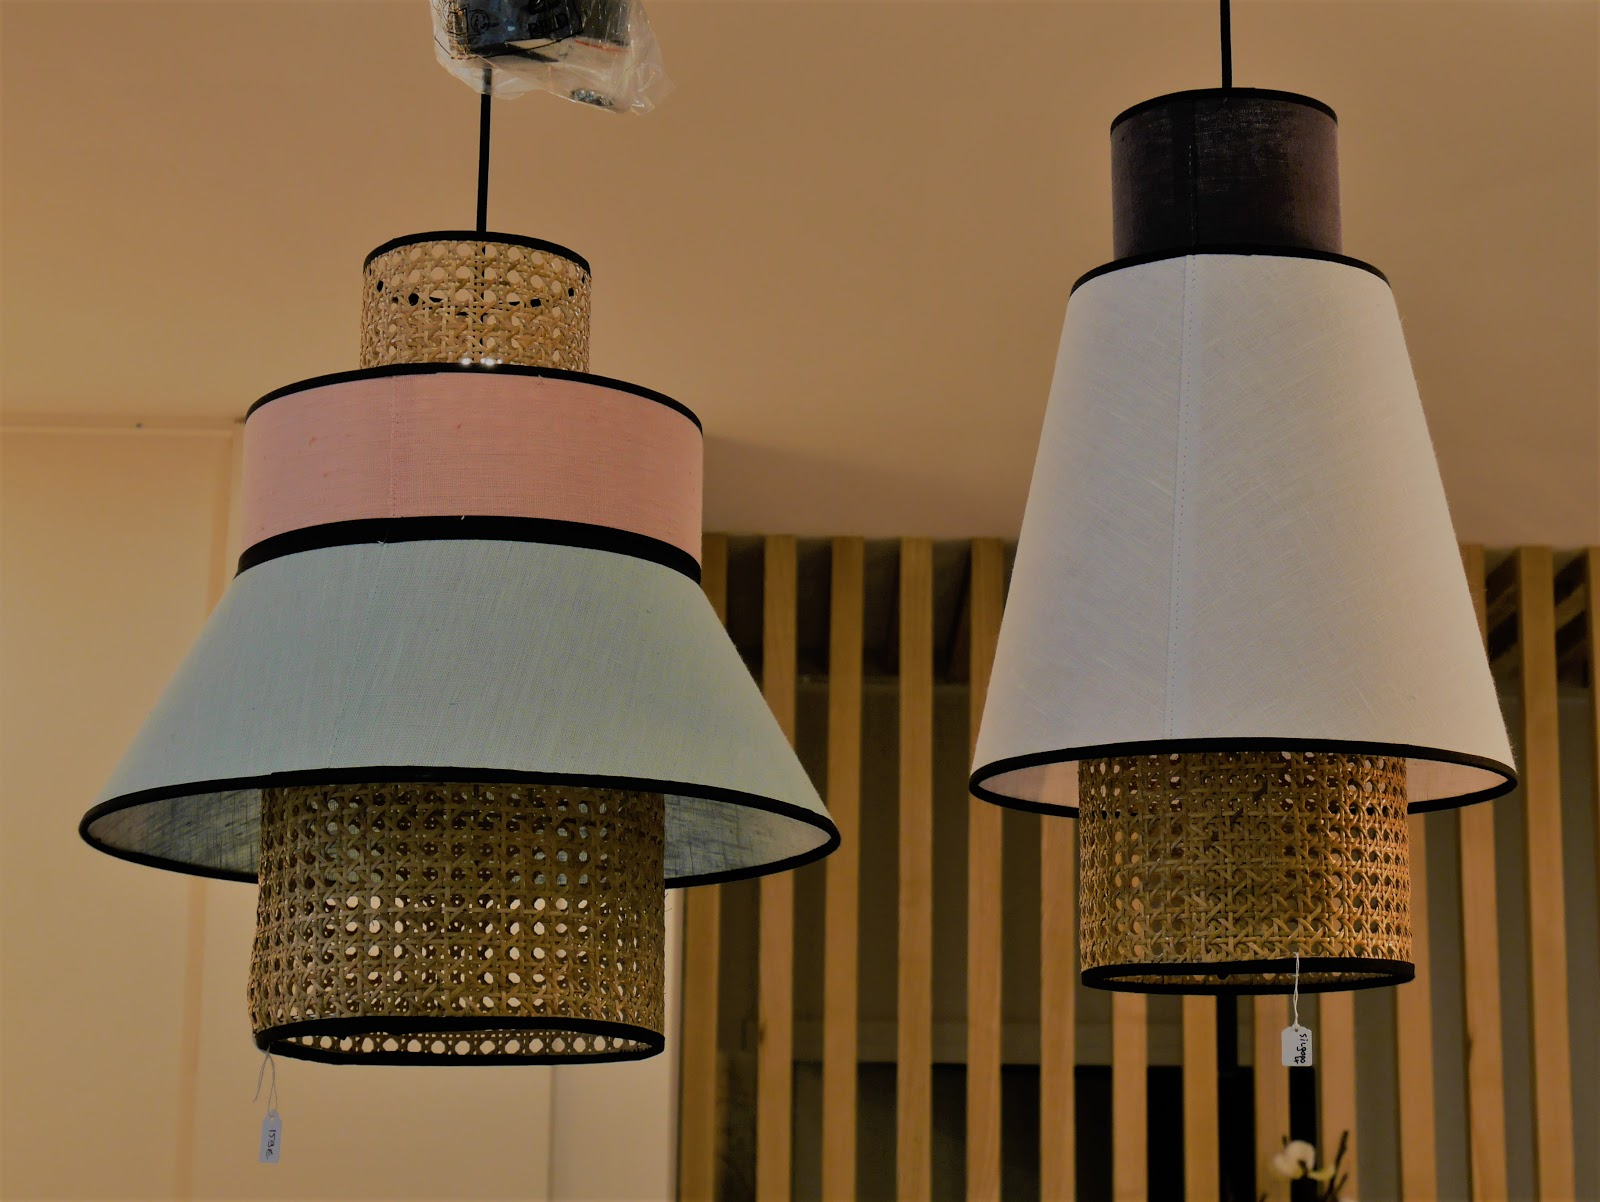 une-place-en-ville-boutique-de-decoration-d-interieur-le-plessis-robinson-photos-lampe